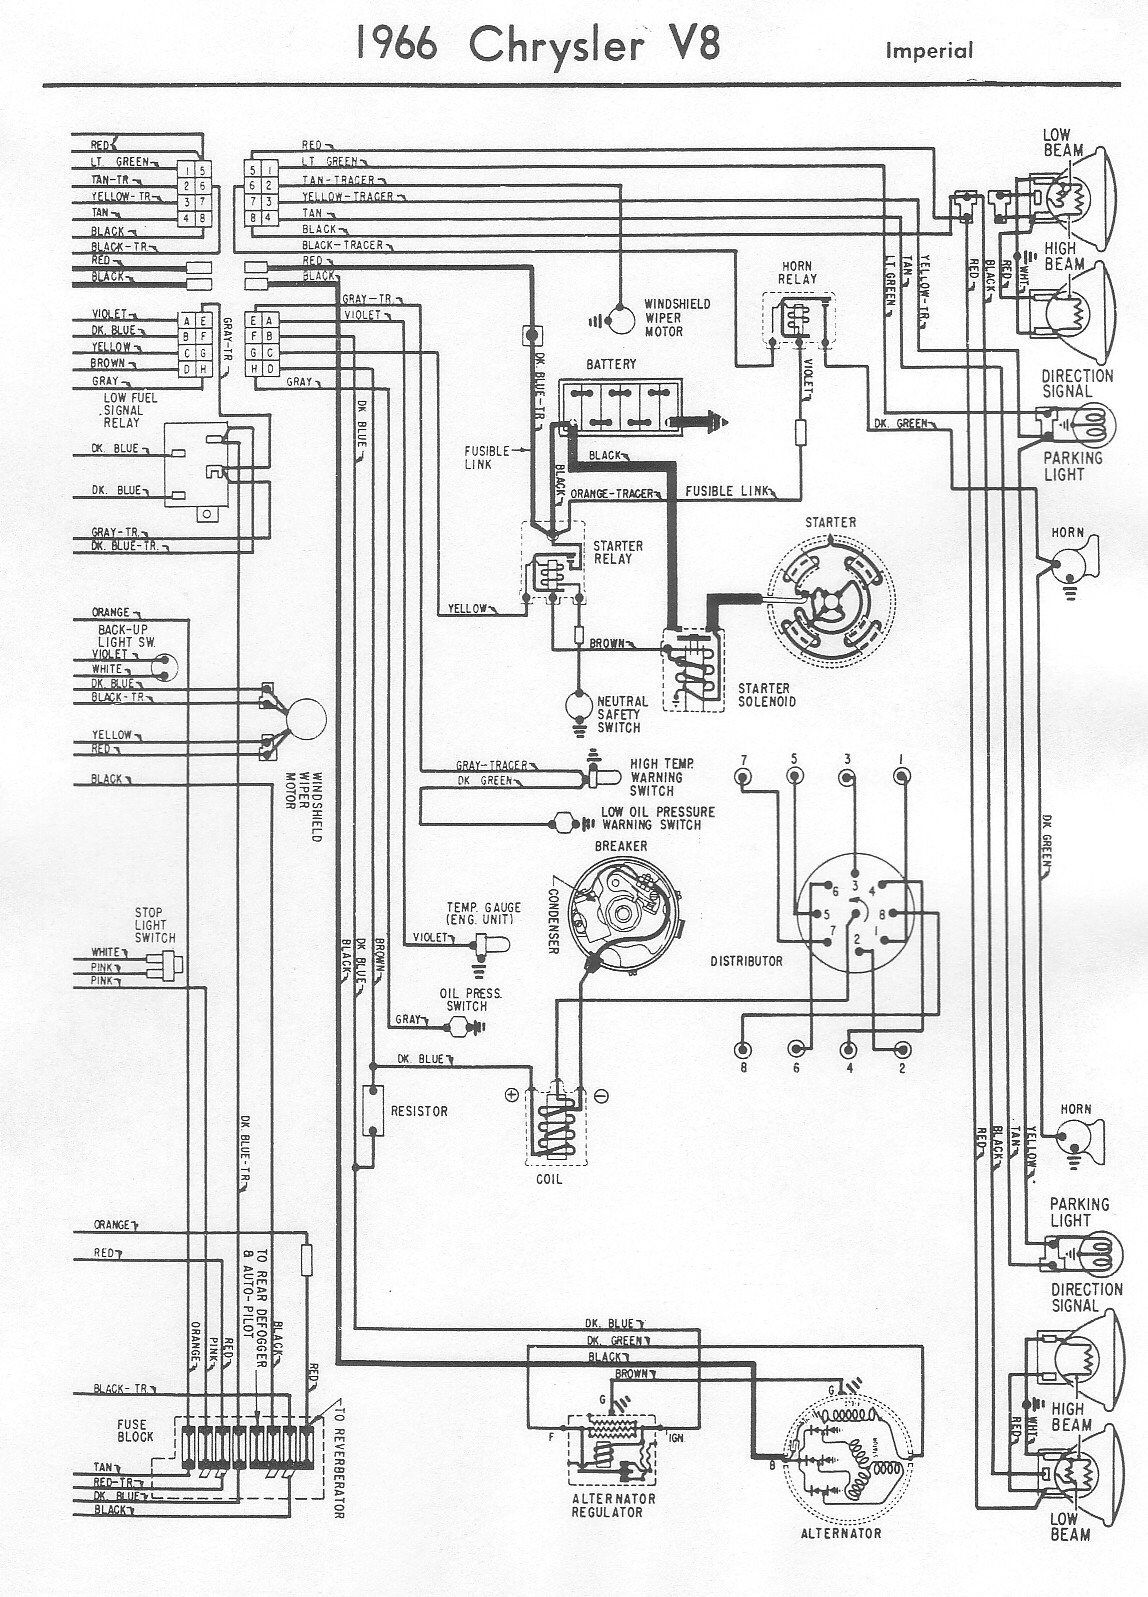 85 Camaro Dash Wiring Diagram Schematic Auto Electrical Wiring Diagram  Toyota Pickup Diagram Acura Slx Engine Wire Diagram